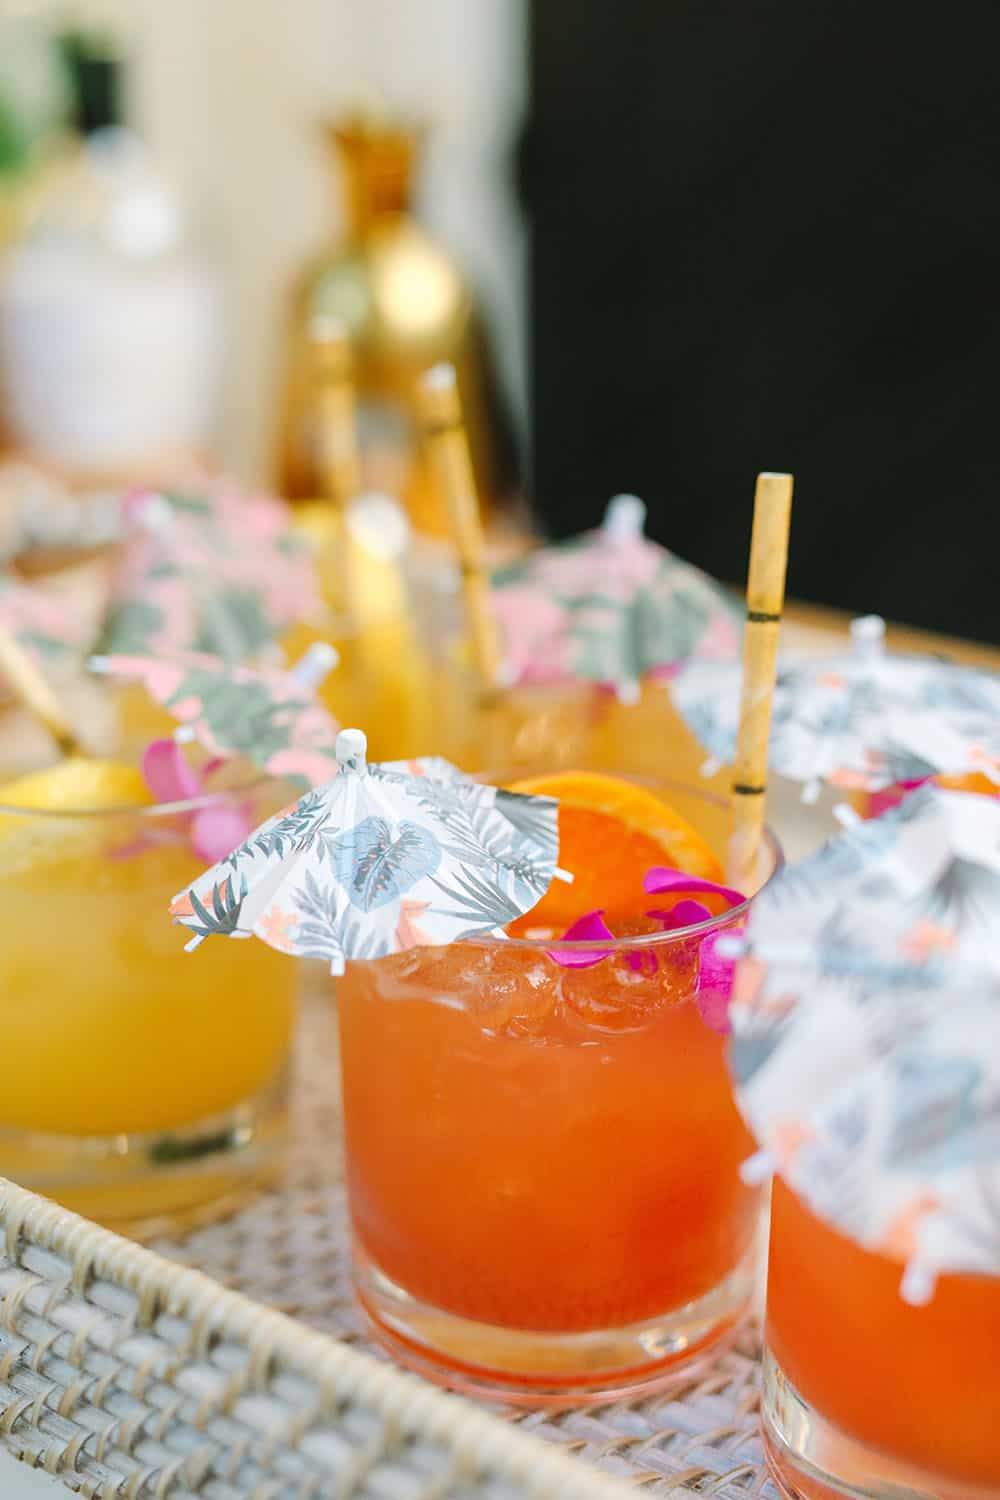 Tropical cocktails with cocktail umbrellas and bamboo straws.